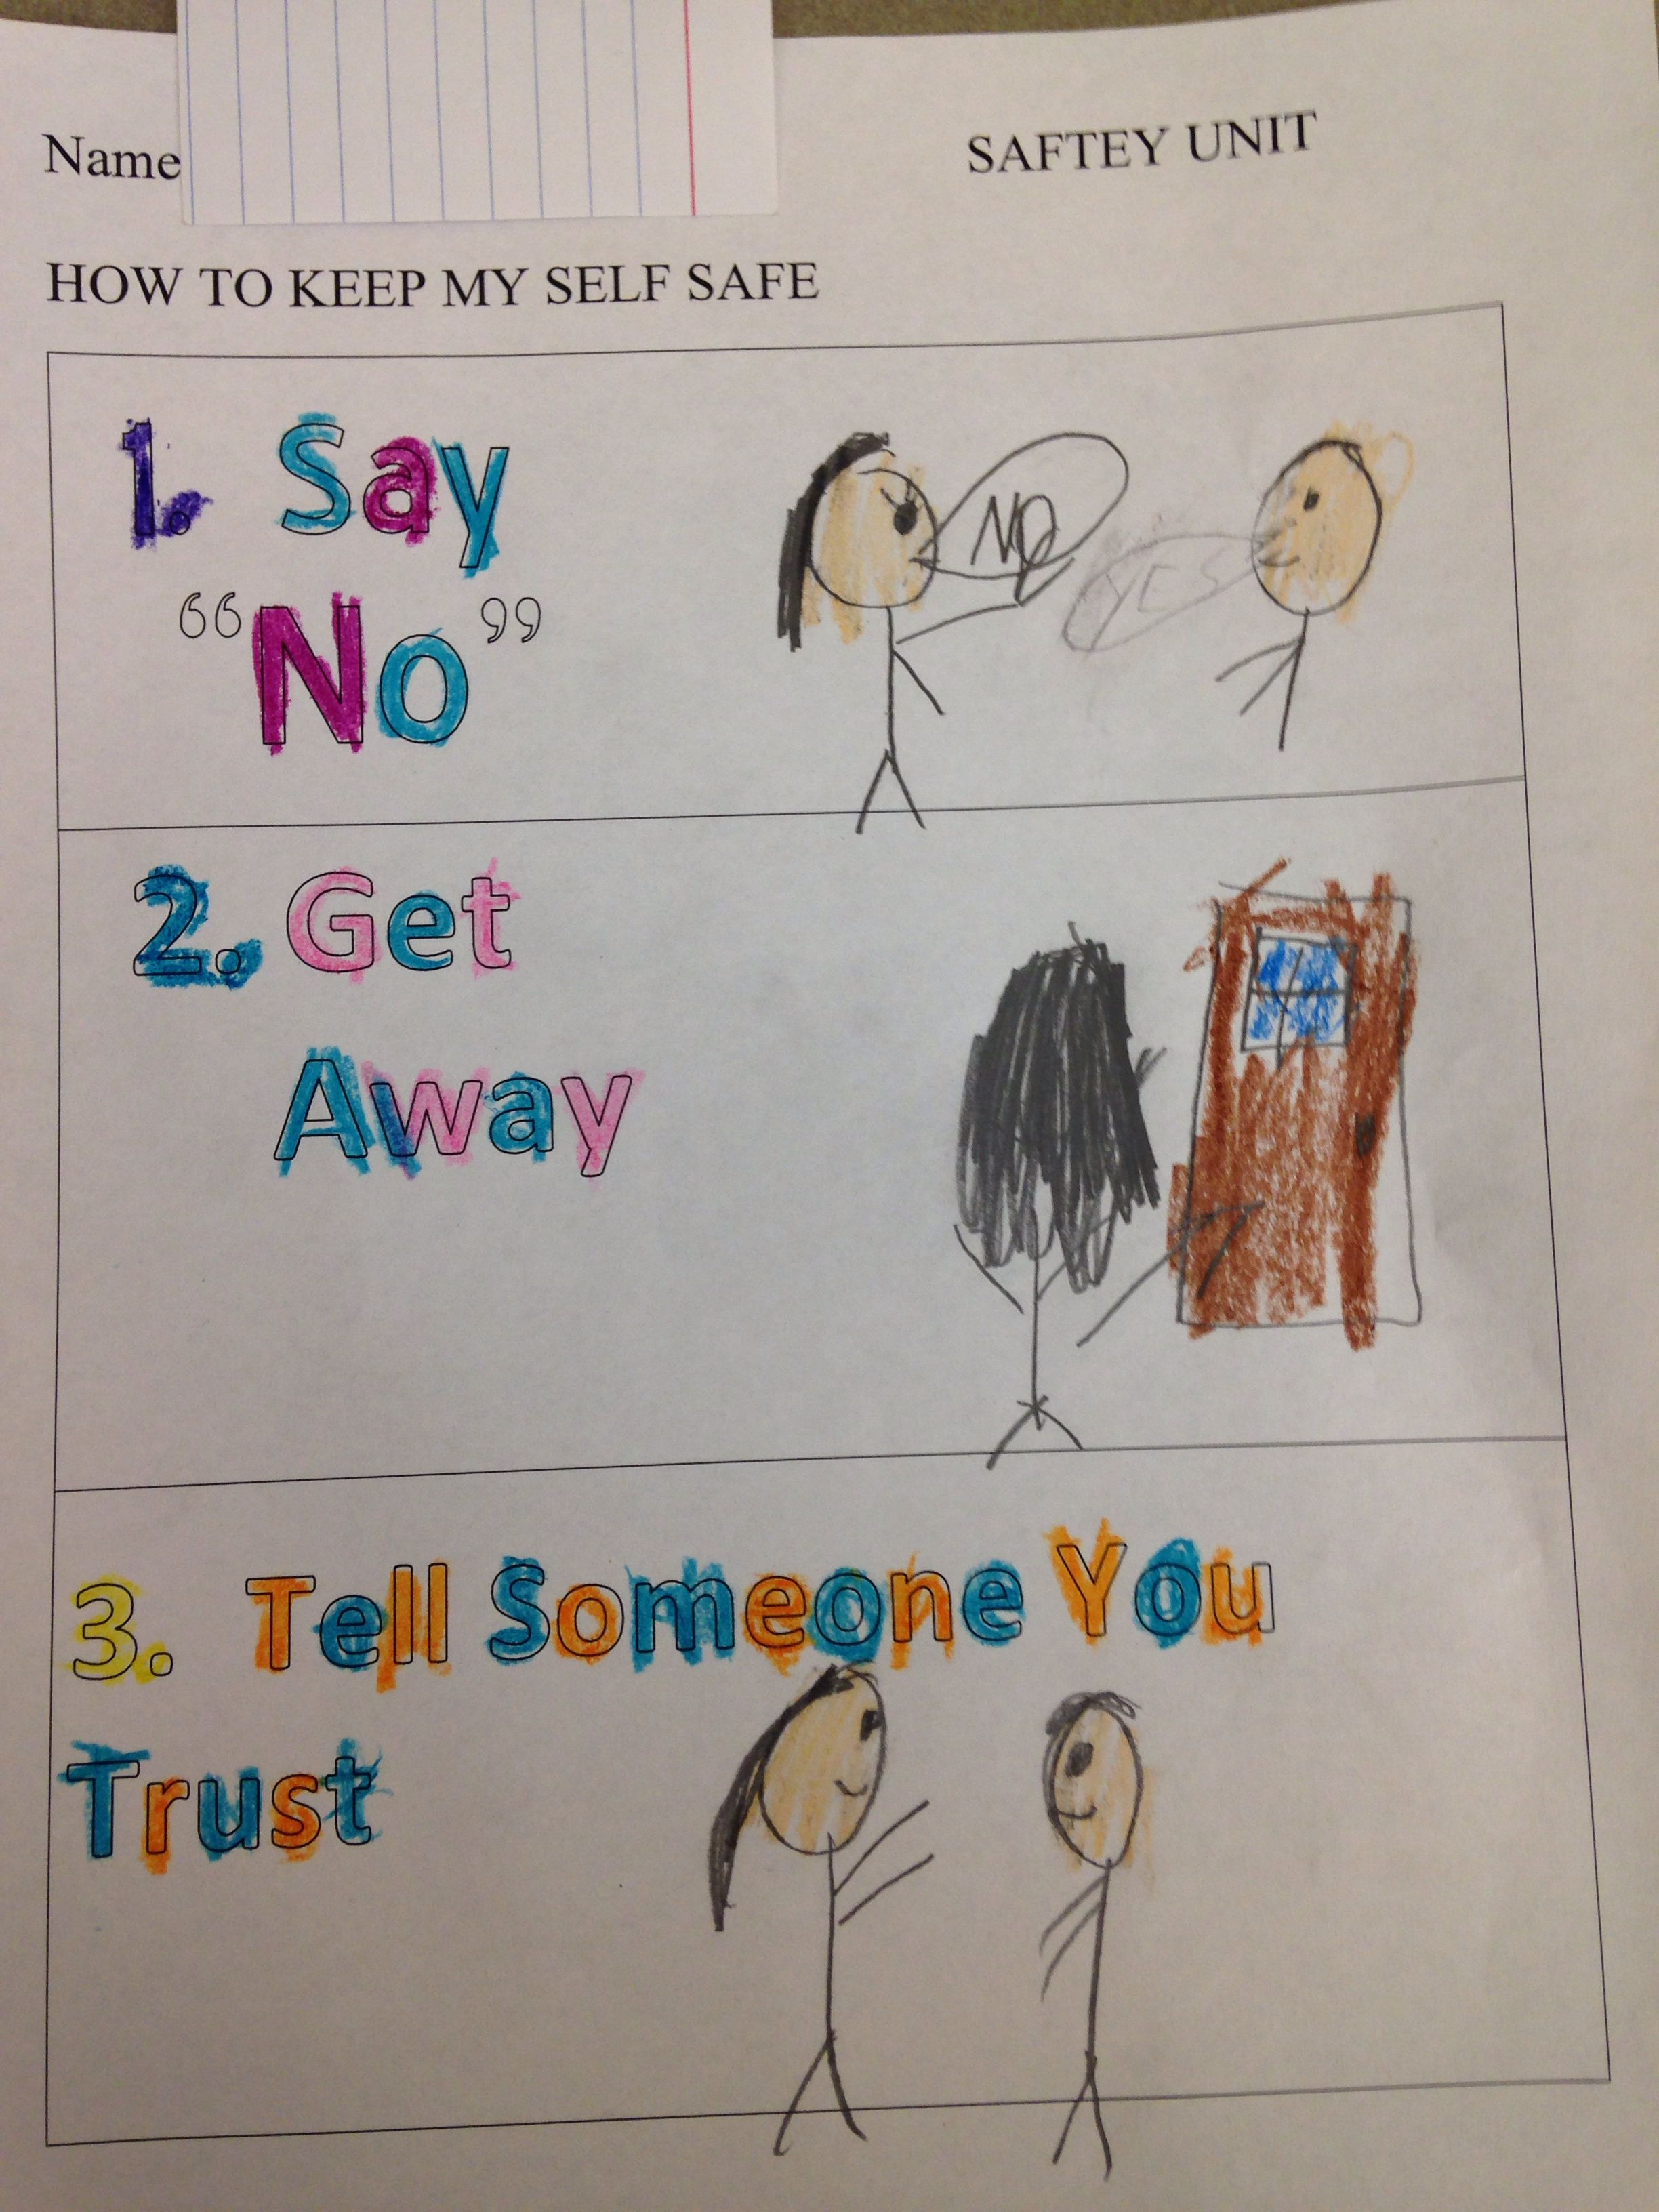 Worksheets From The First Lesson In My Safety Unit We Talked About What To Do If You Are Personal Safety Lessons School Counseling Lessons Safety Lesson Plans [ 3264 x 2448 Pixel ]